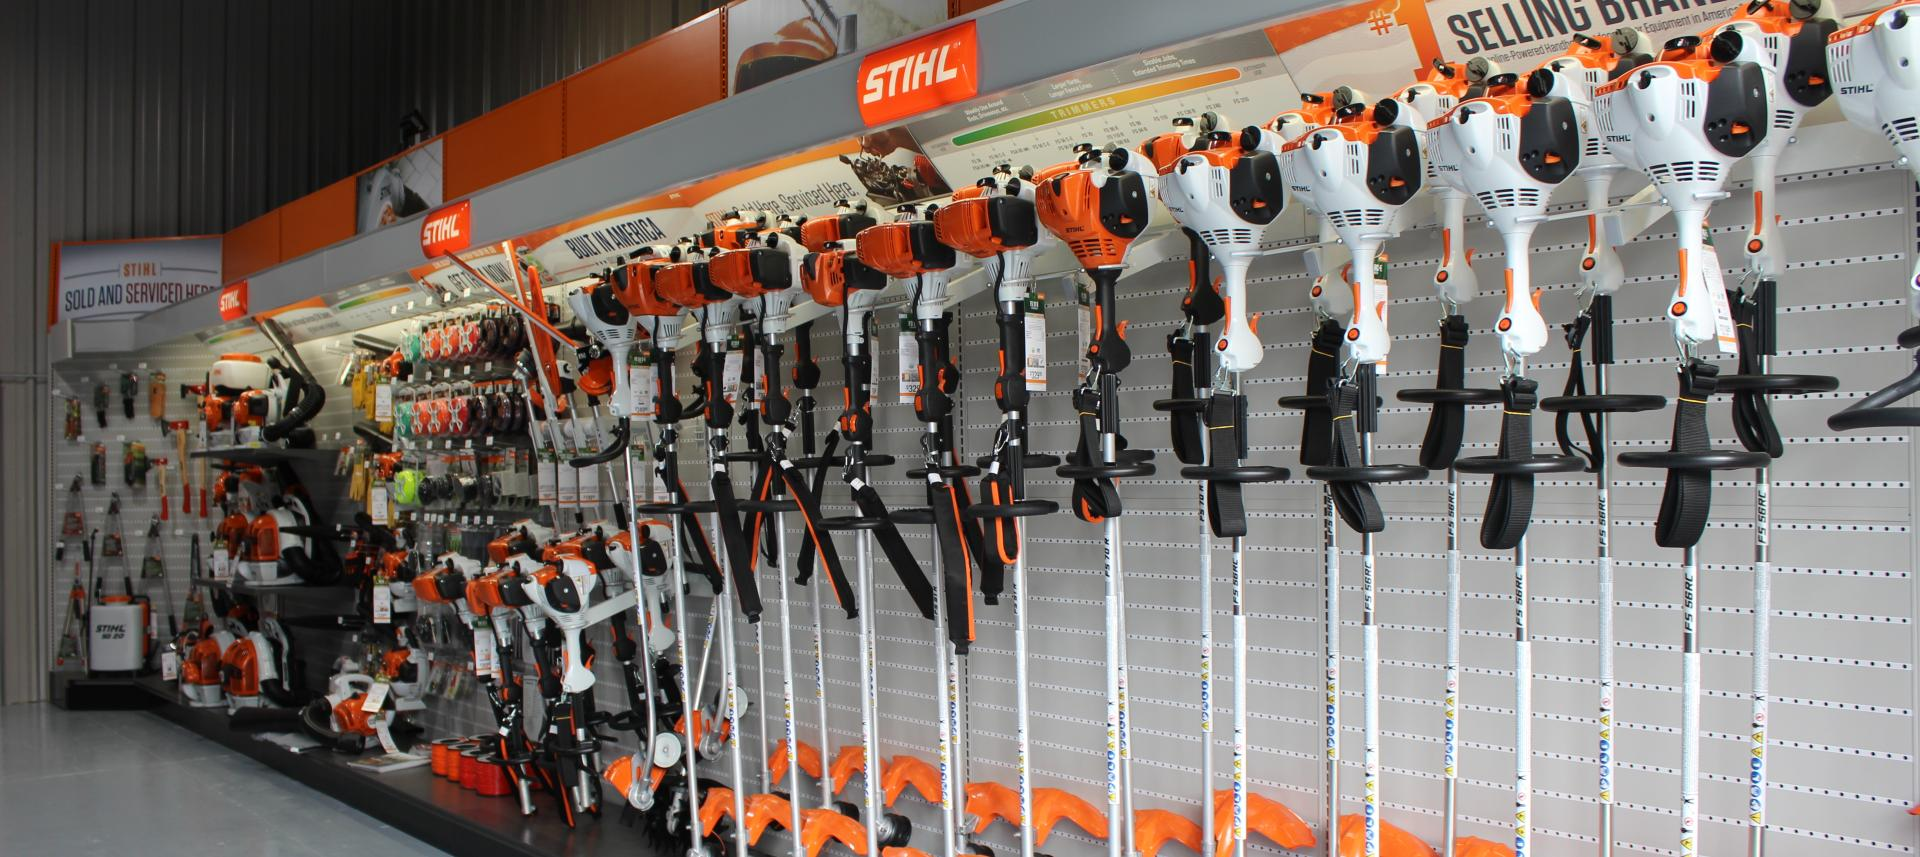 Stihl equipment selection